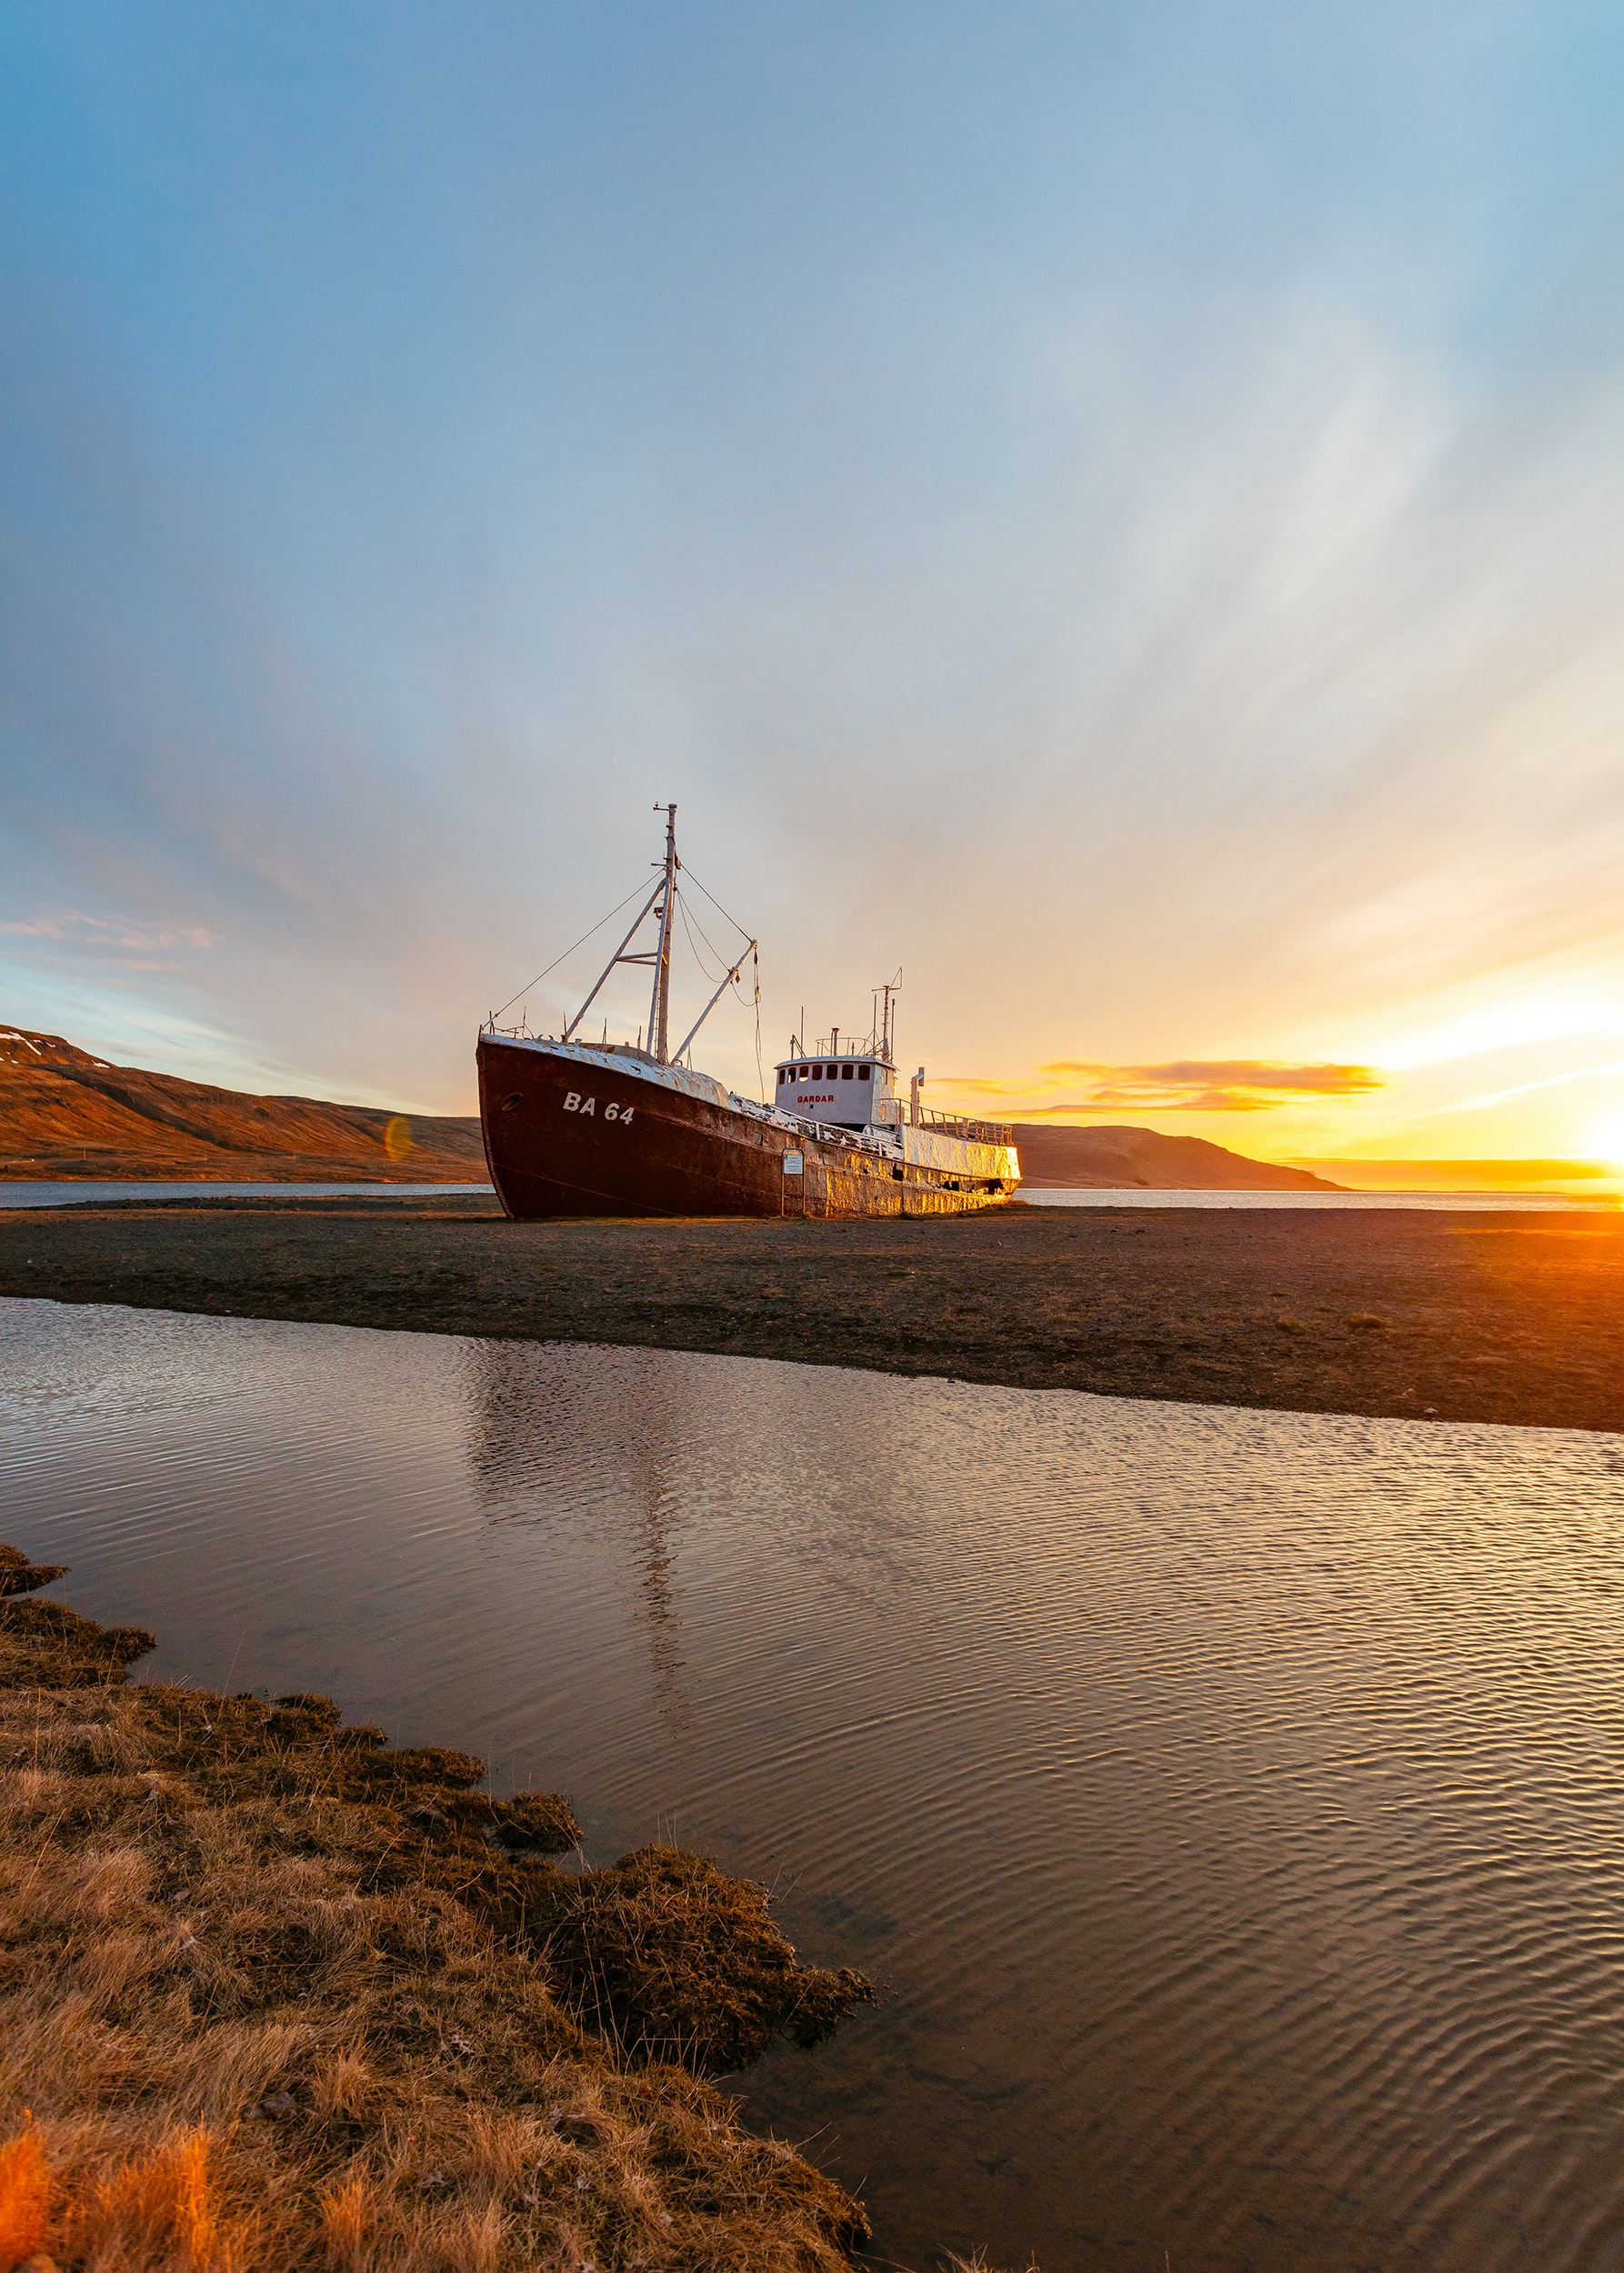 white and brown ship on seashore under sunrise